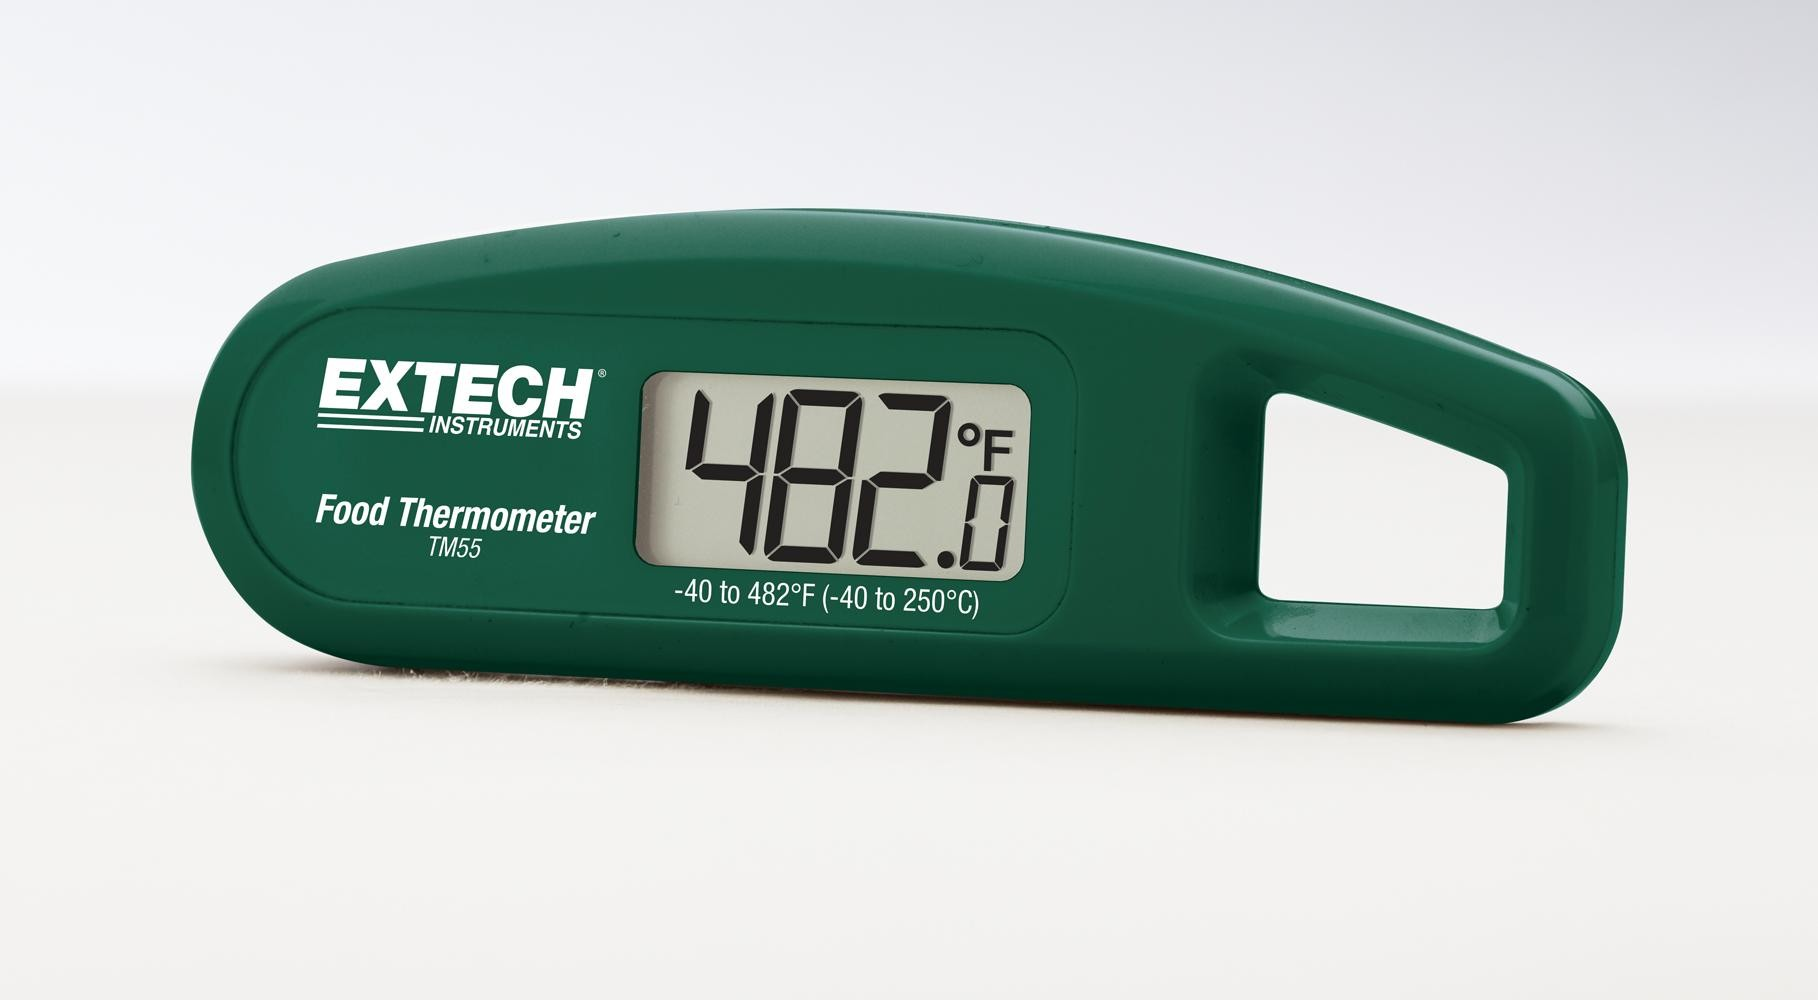 Extech Food Thermometer